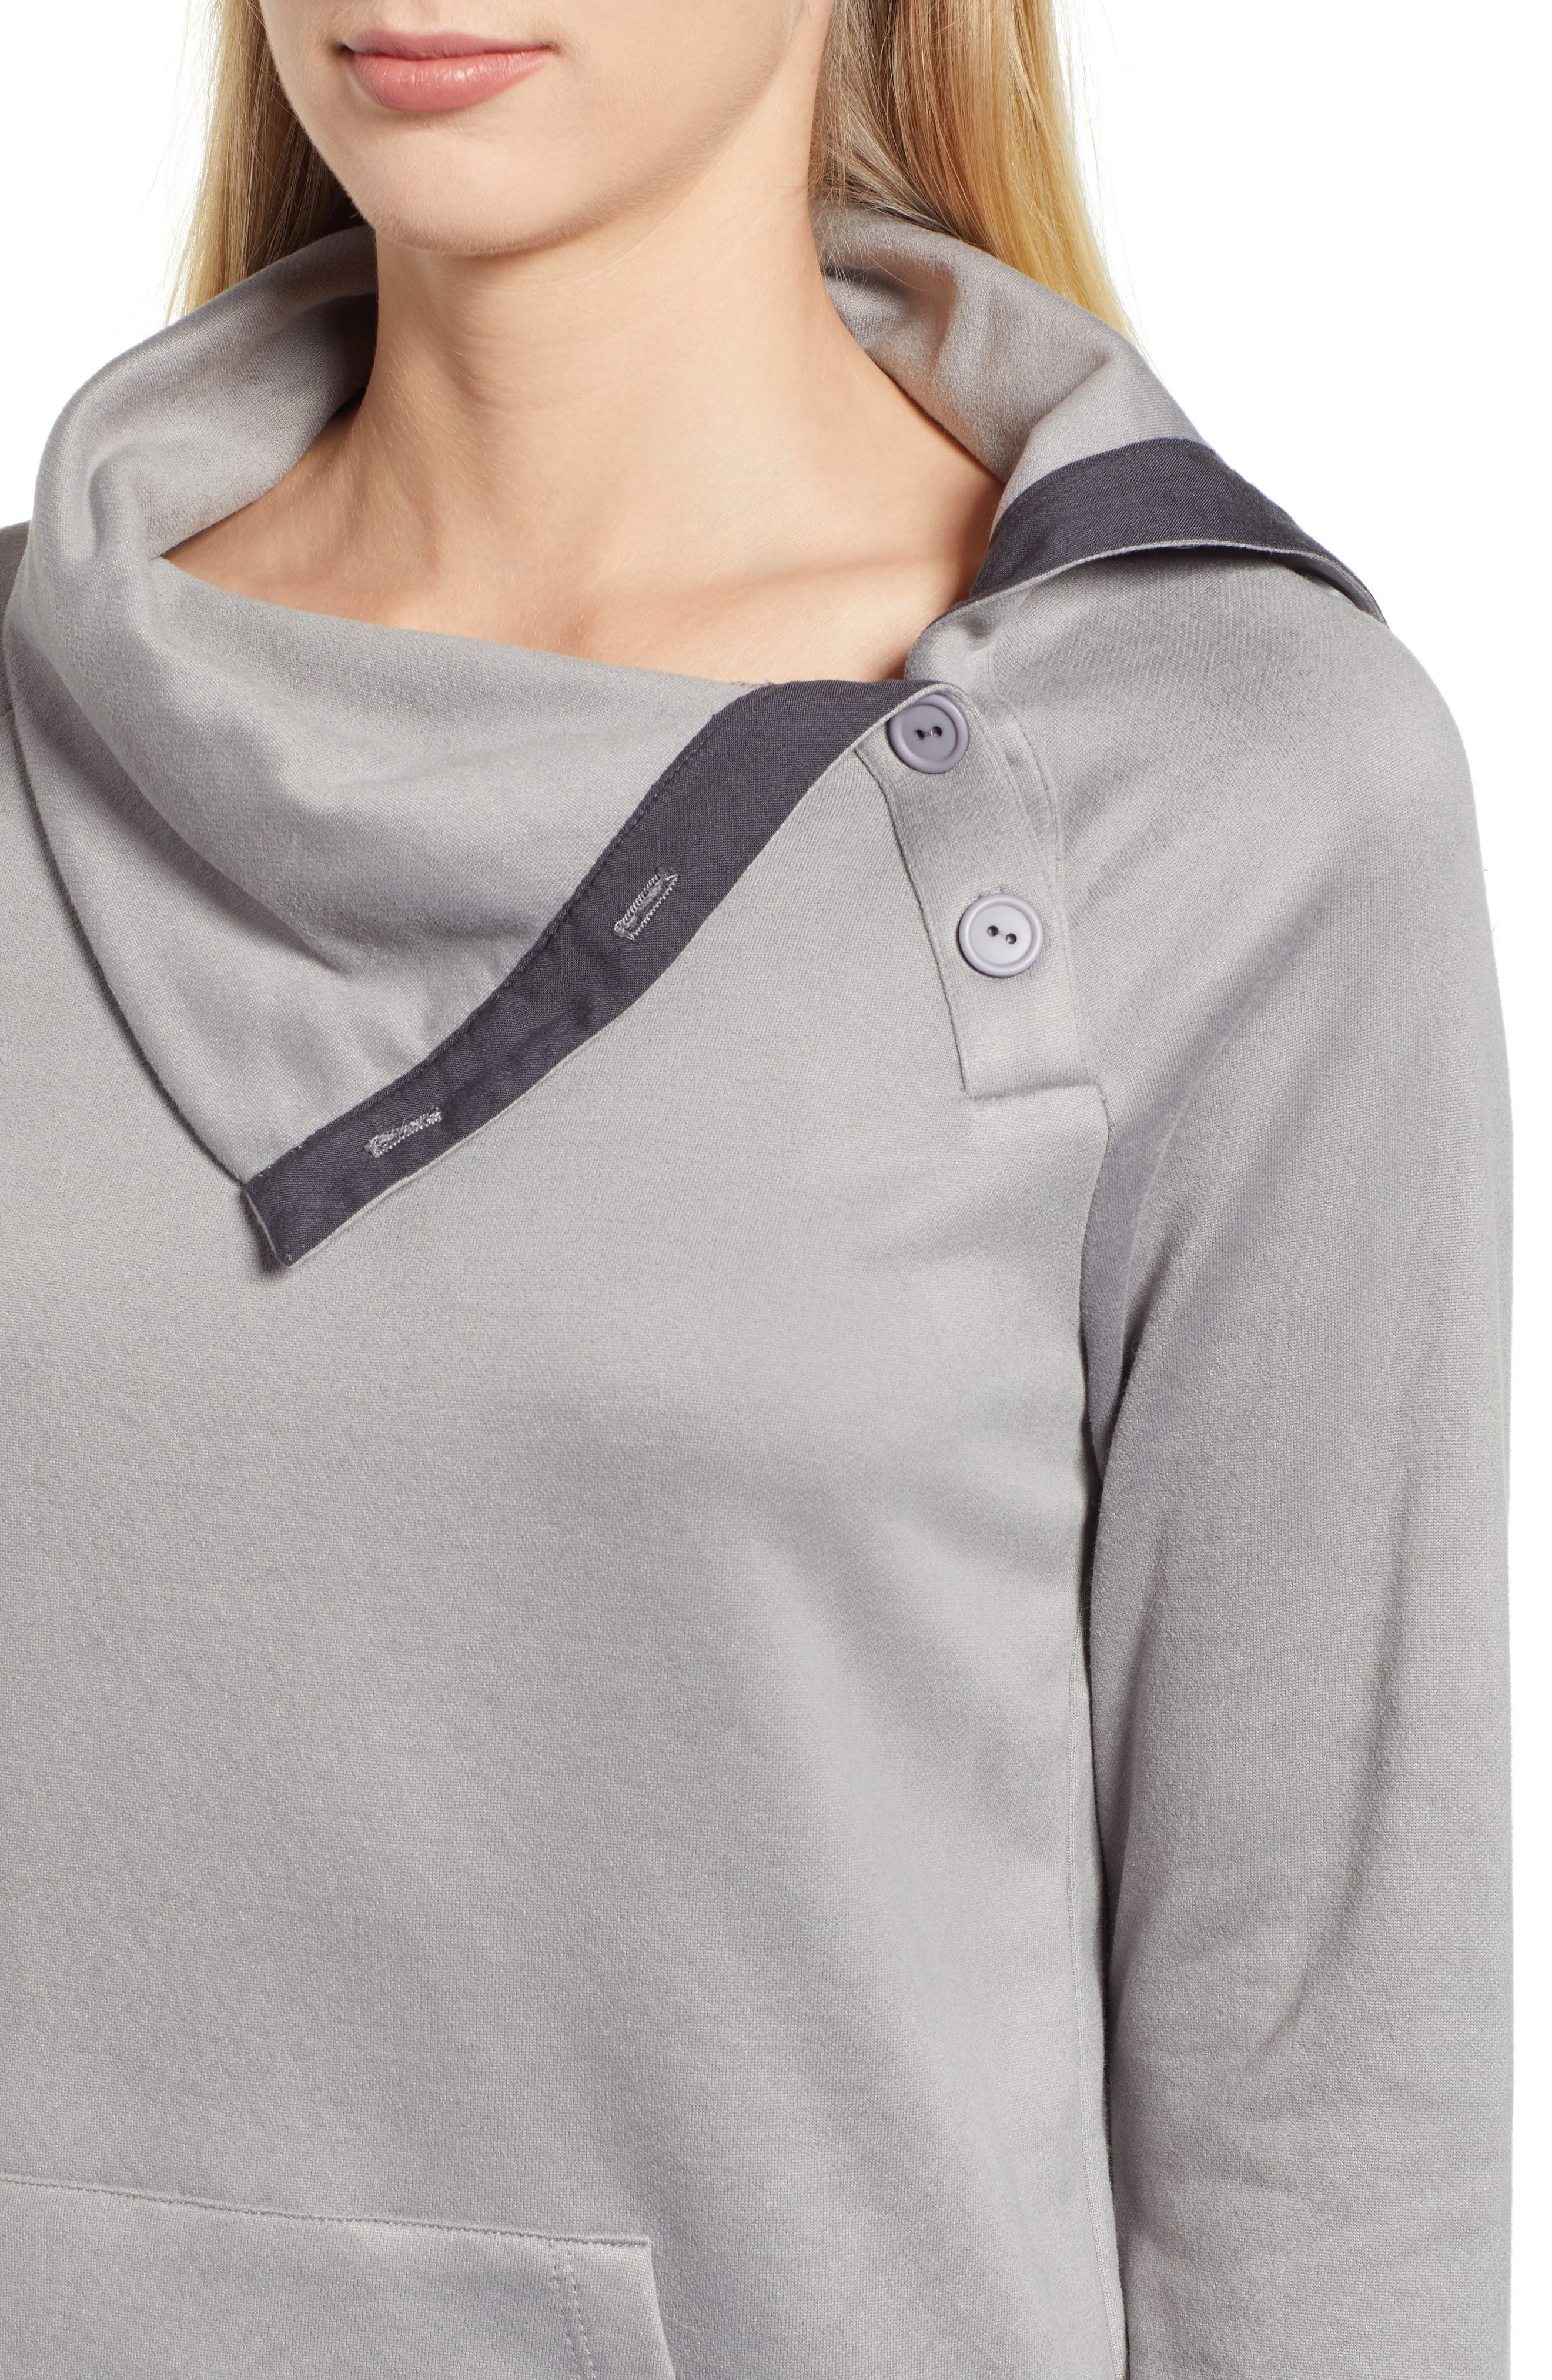 x Living in Yellow Judy Plush Fleece Pullover,                             Alternate thumbnail 4, color,                             GREY